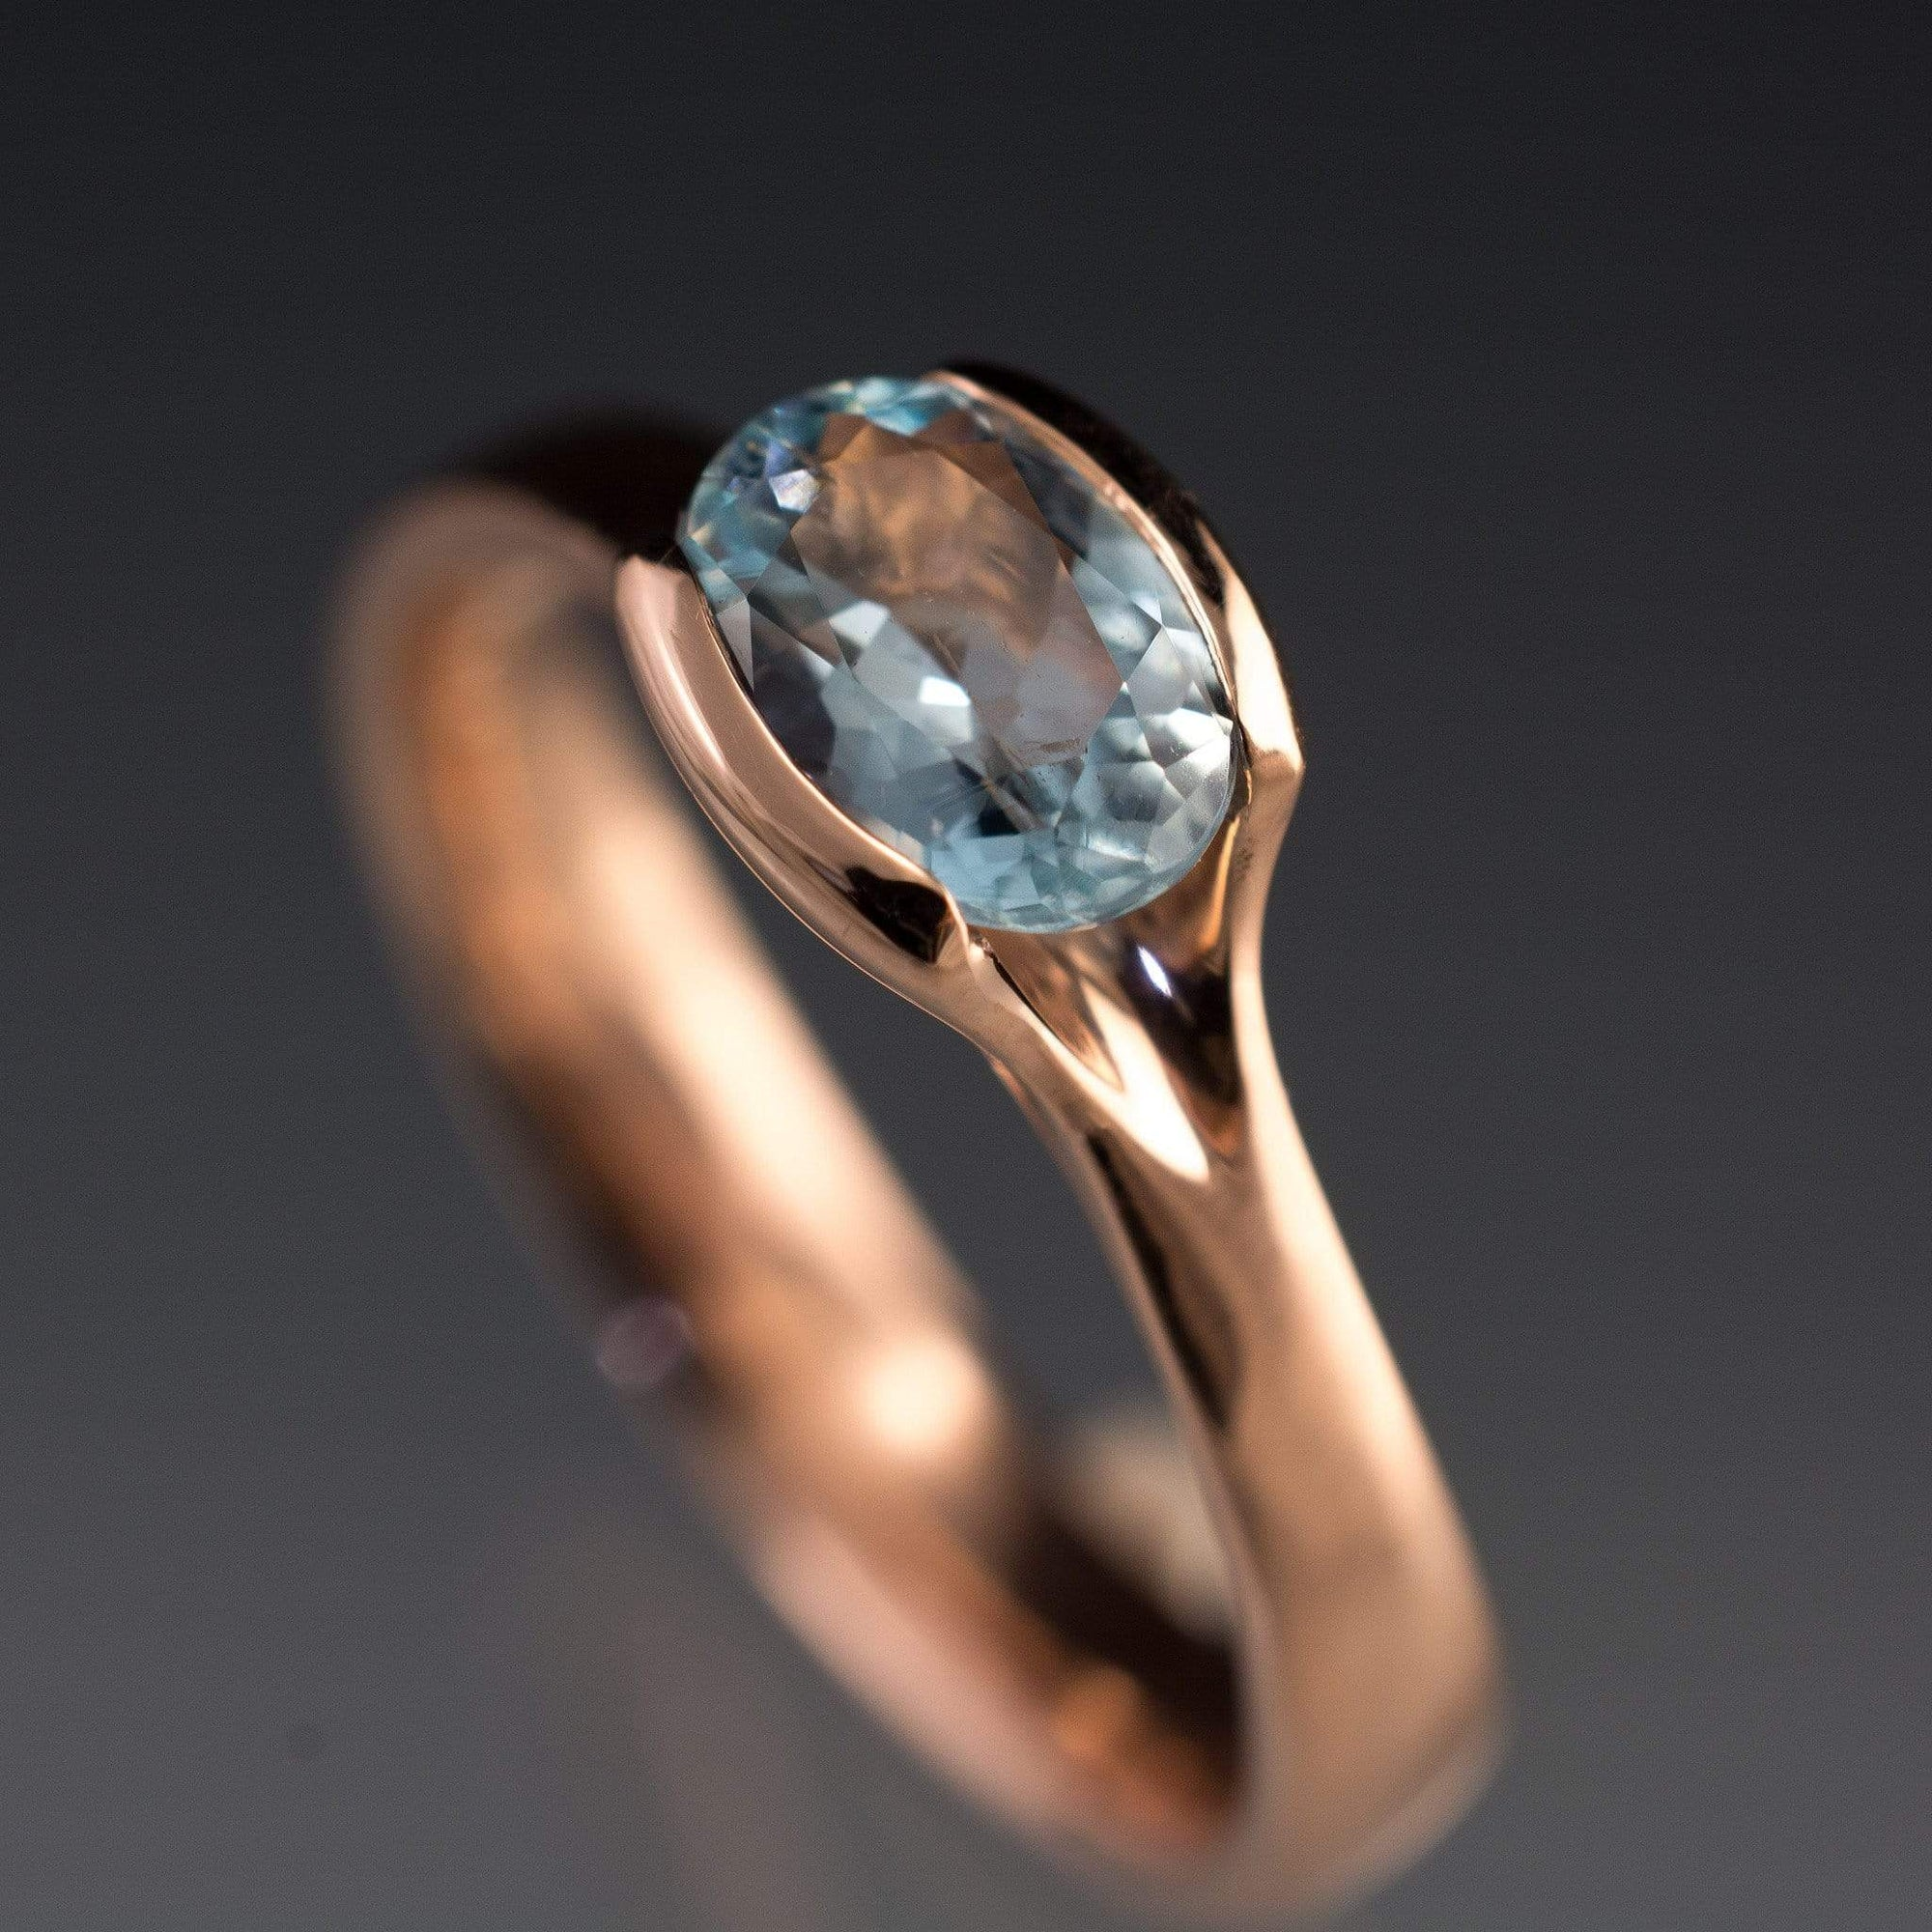 Oval Aquamarine Fold Solitaire Engagement Ring - by Nodeform